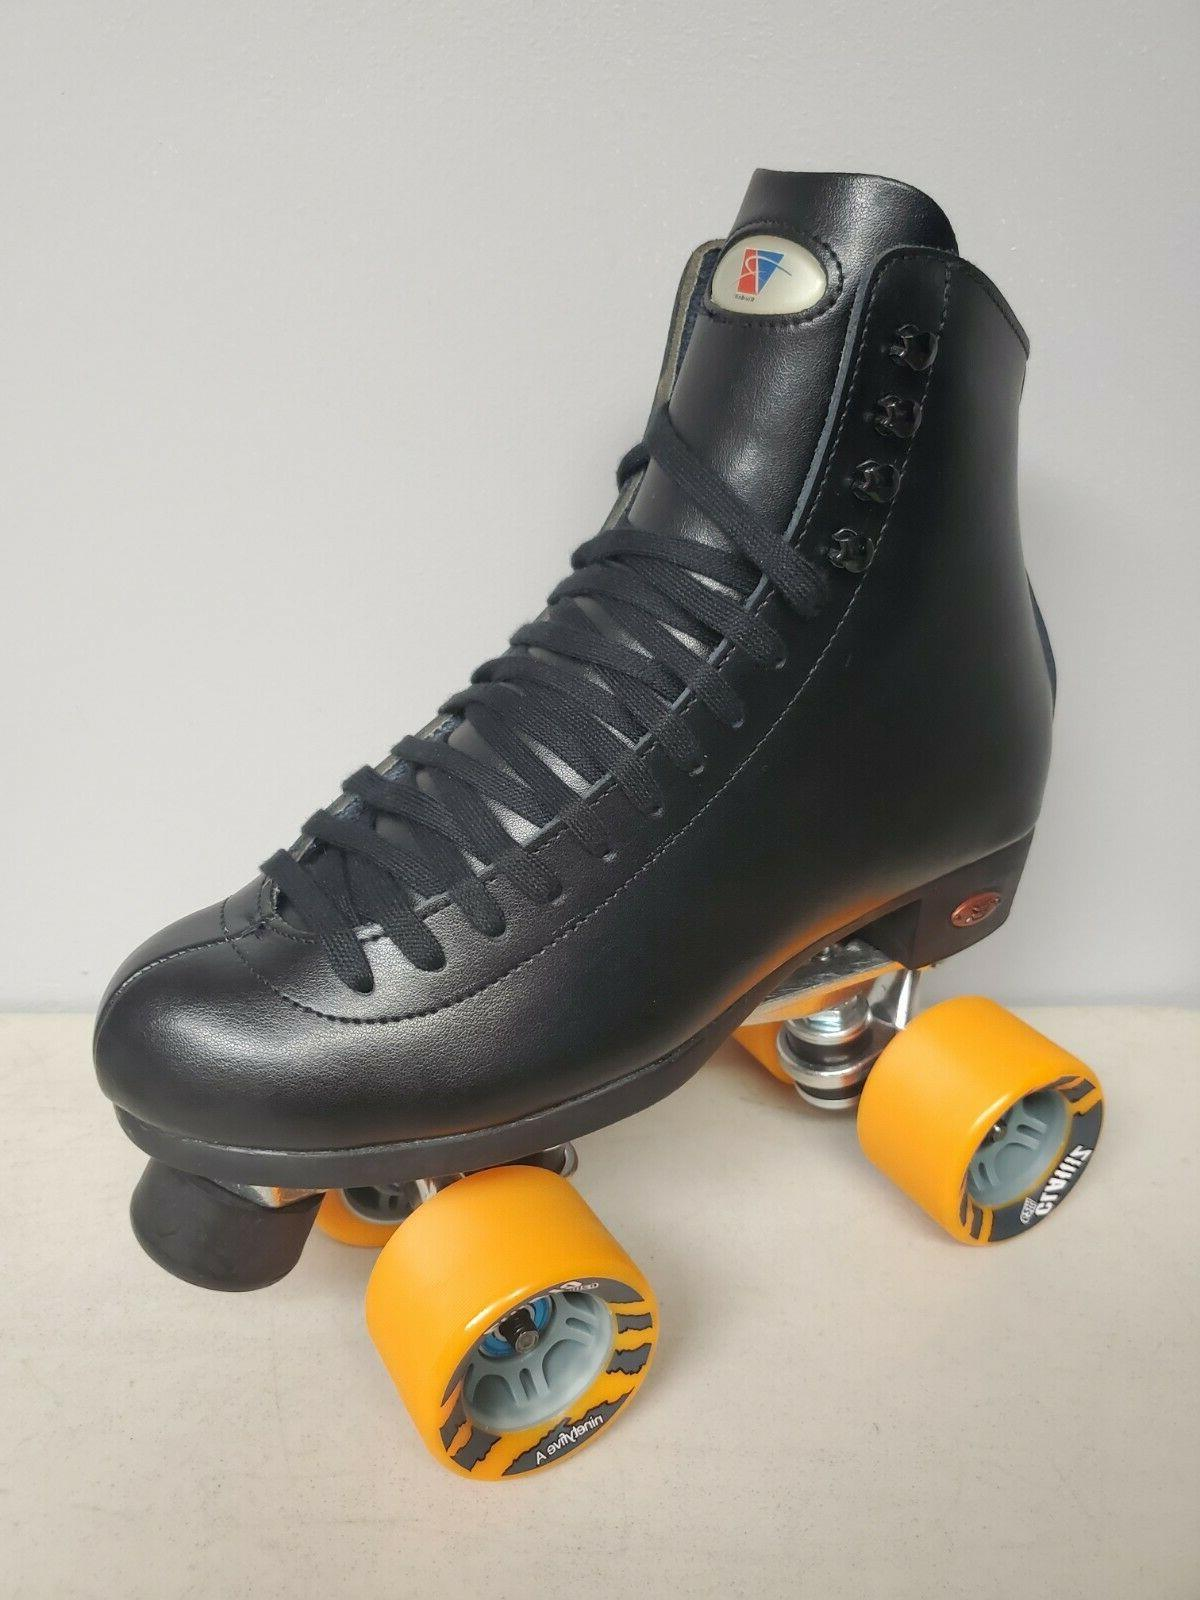 brand new 120 leather boot roller skates